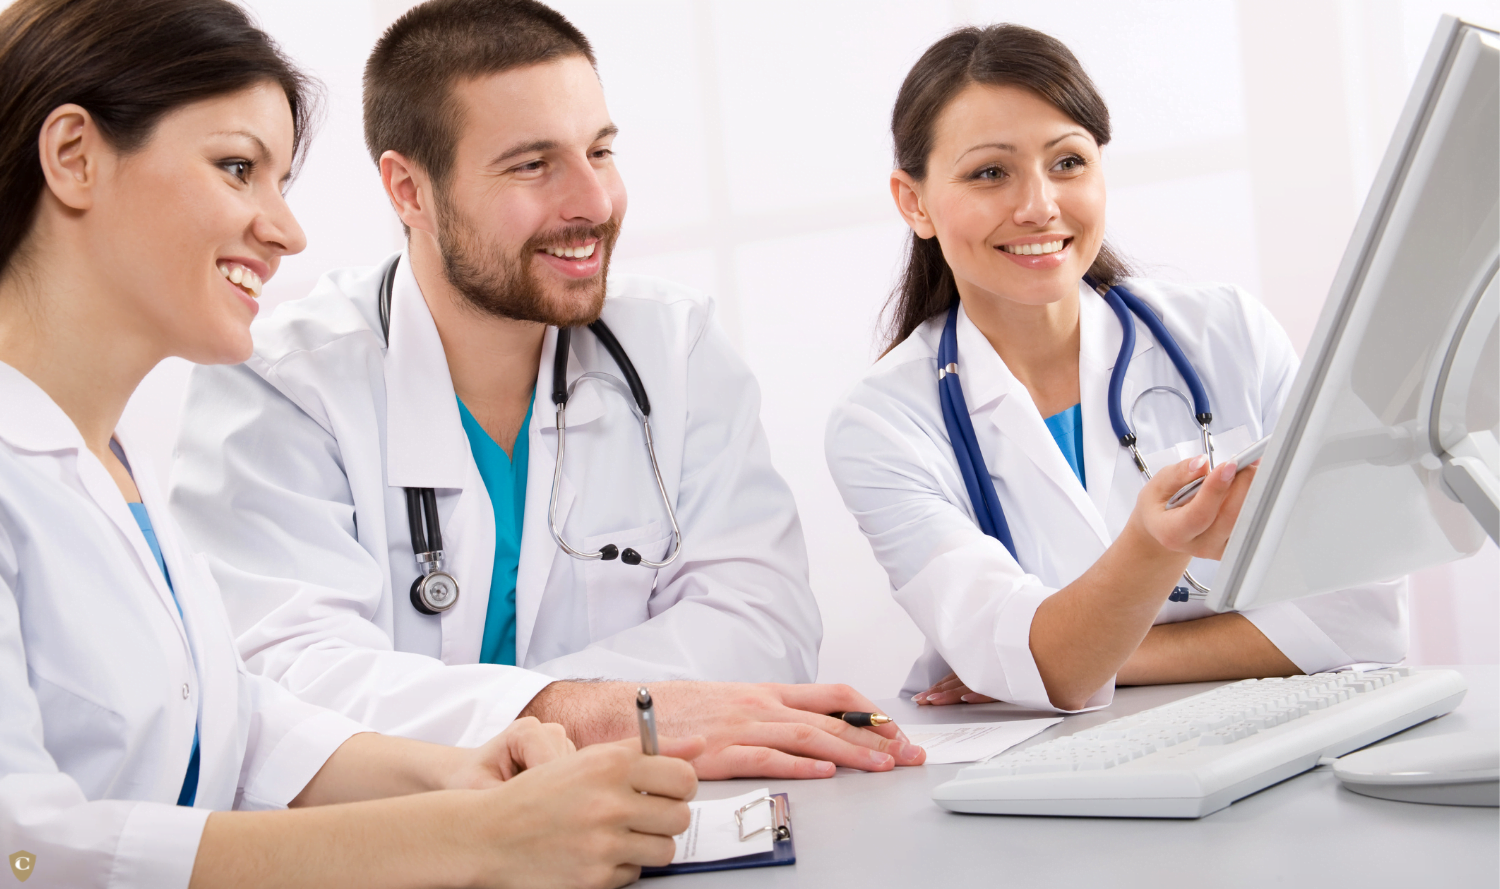 How Healthy Is Your Medical Practice